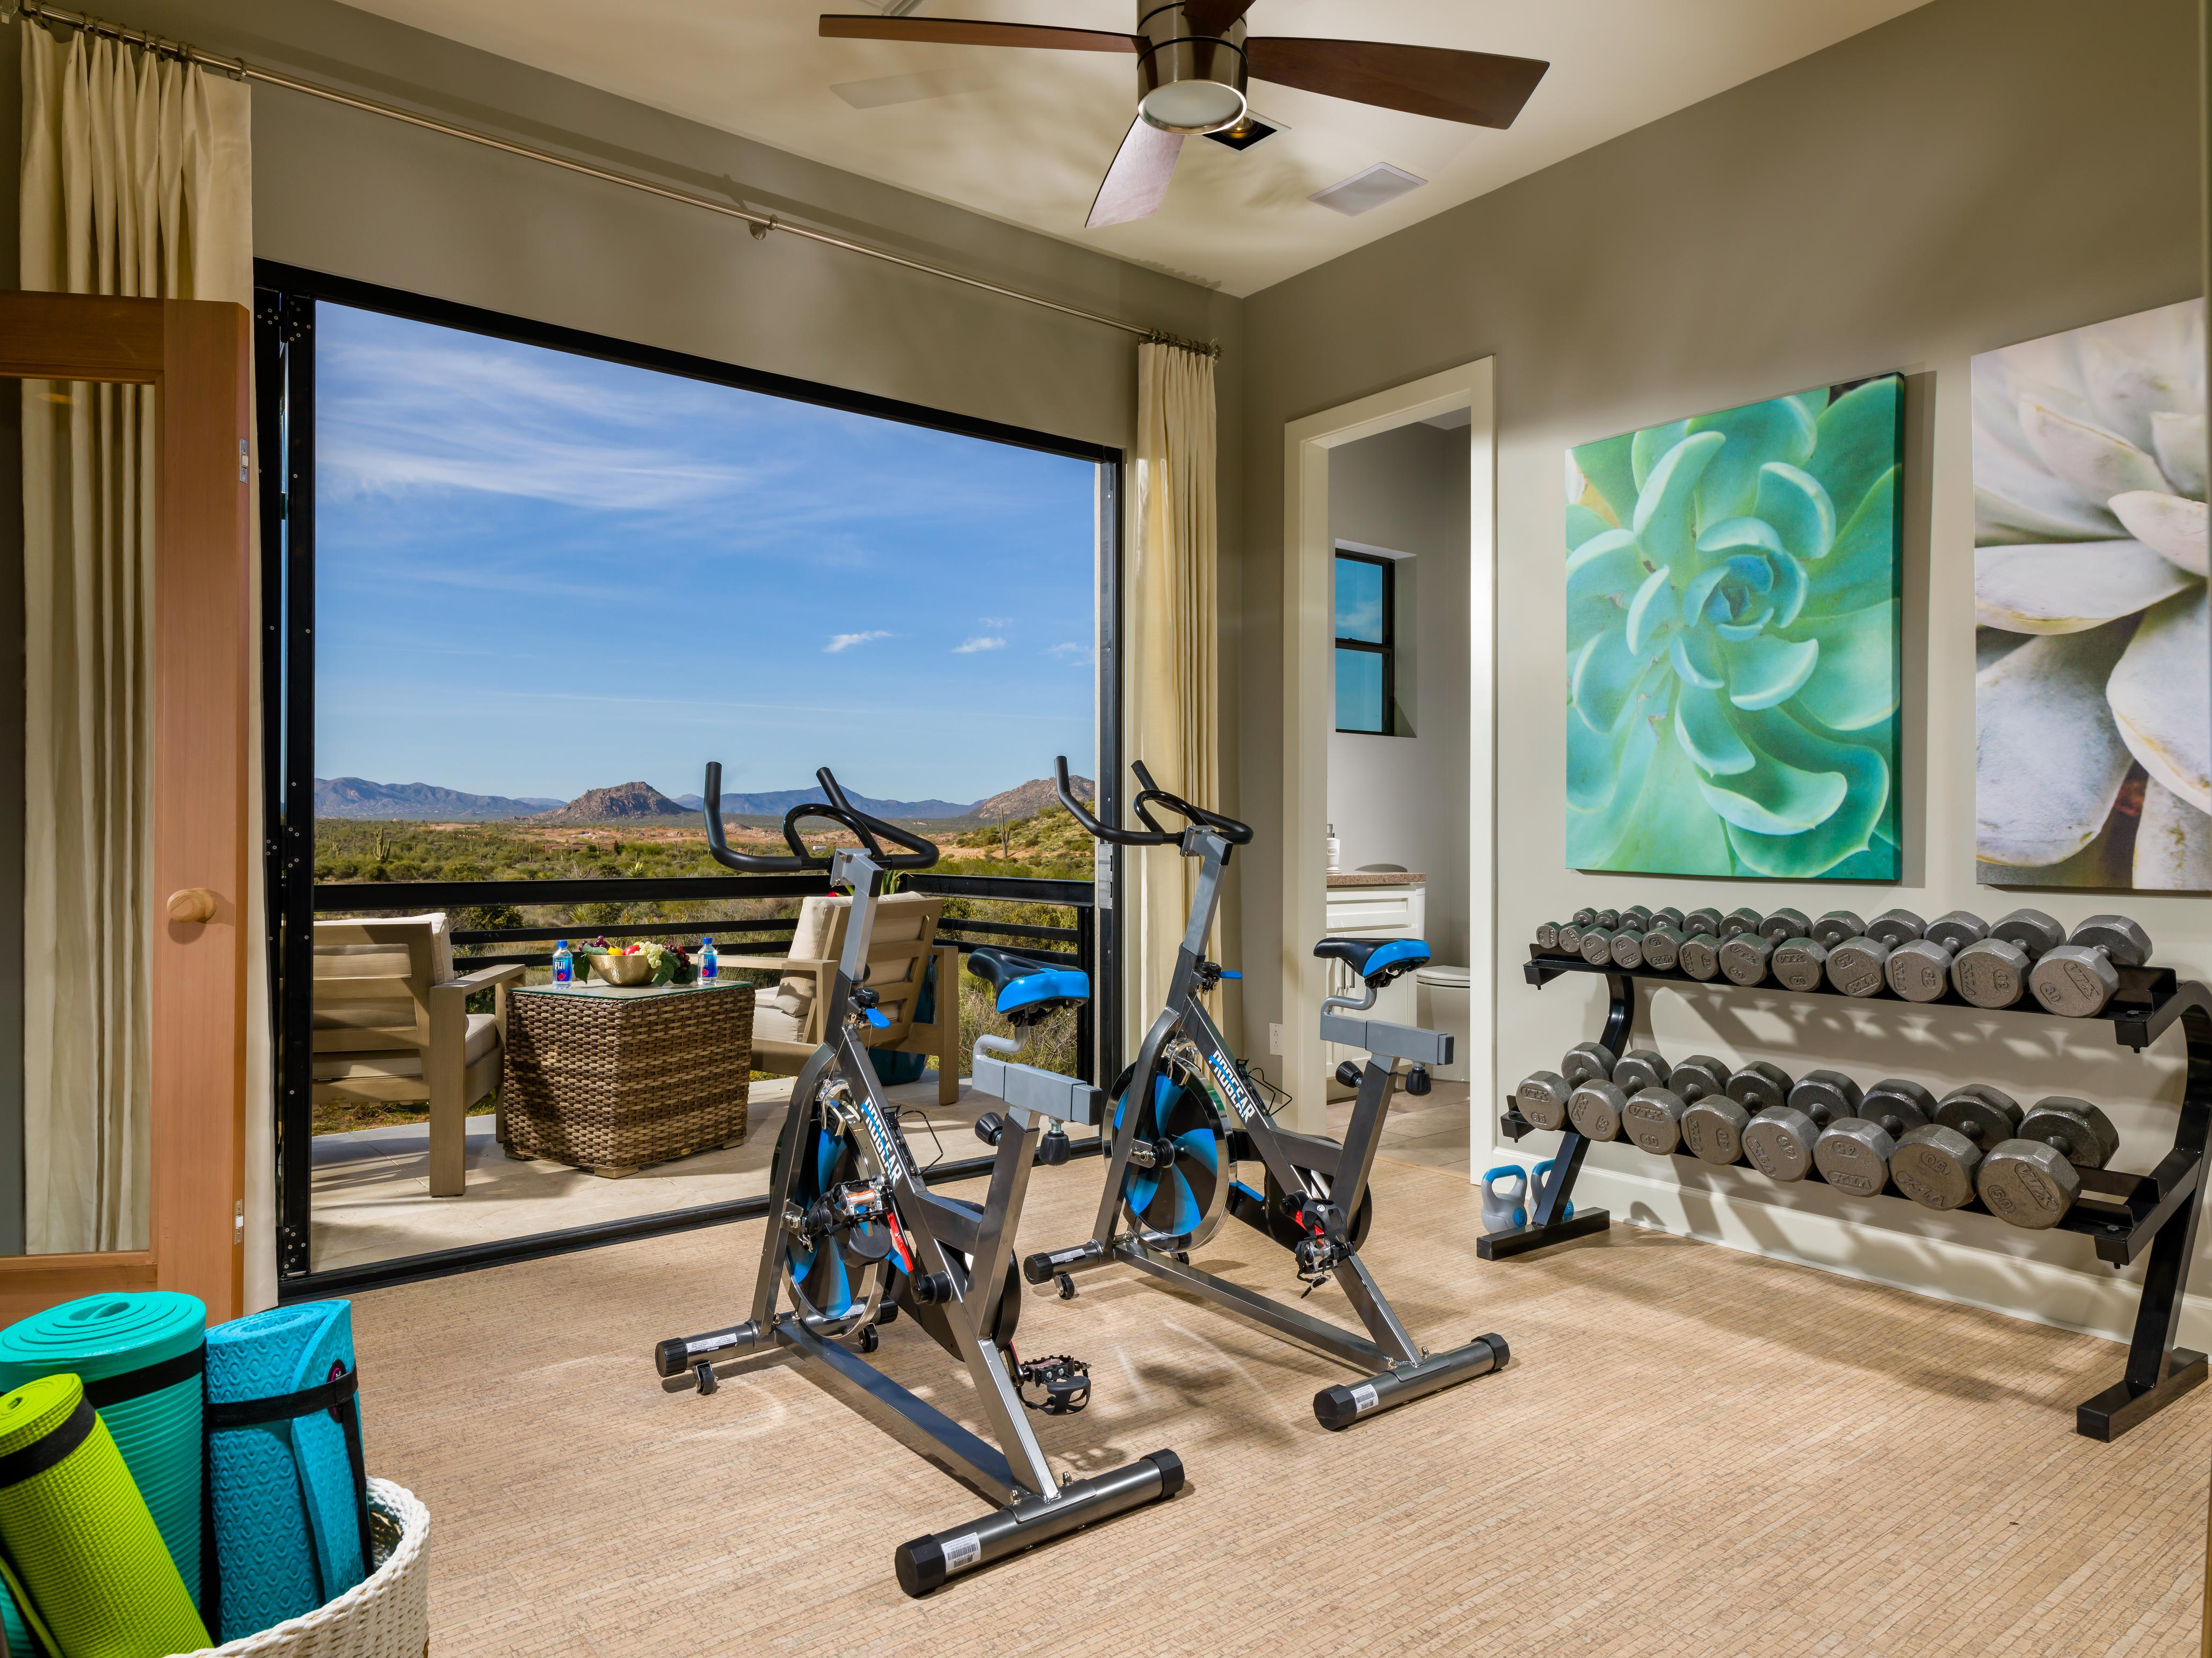 Home gym with a view of mountains.